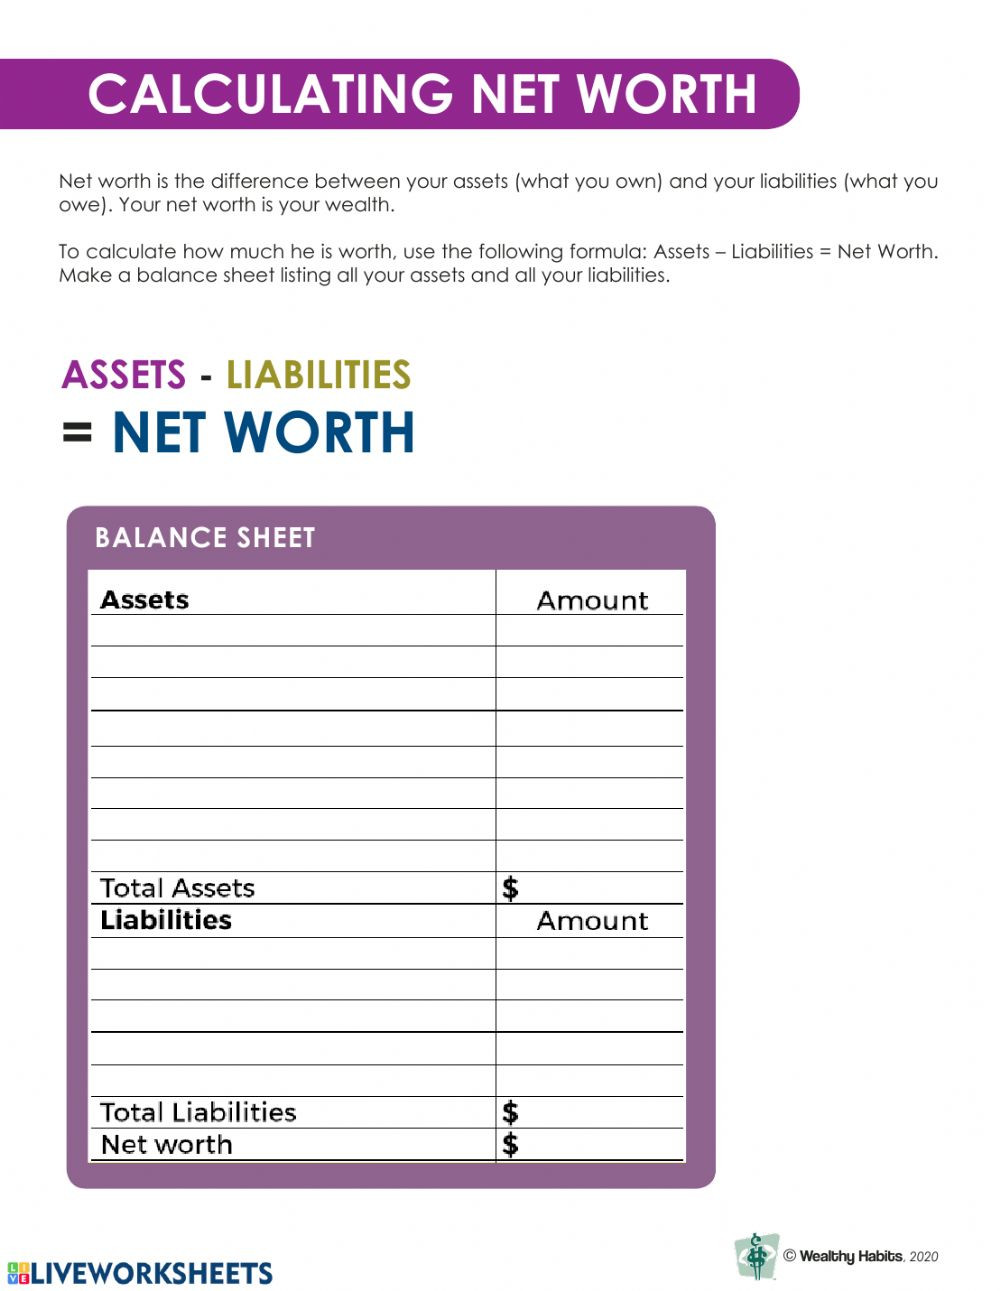 Assets and Liabilities Worksheet Wealthy Habits Calculating Net Worth Interactive Worksheet